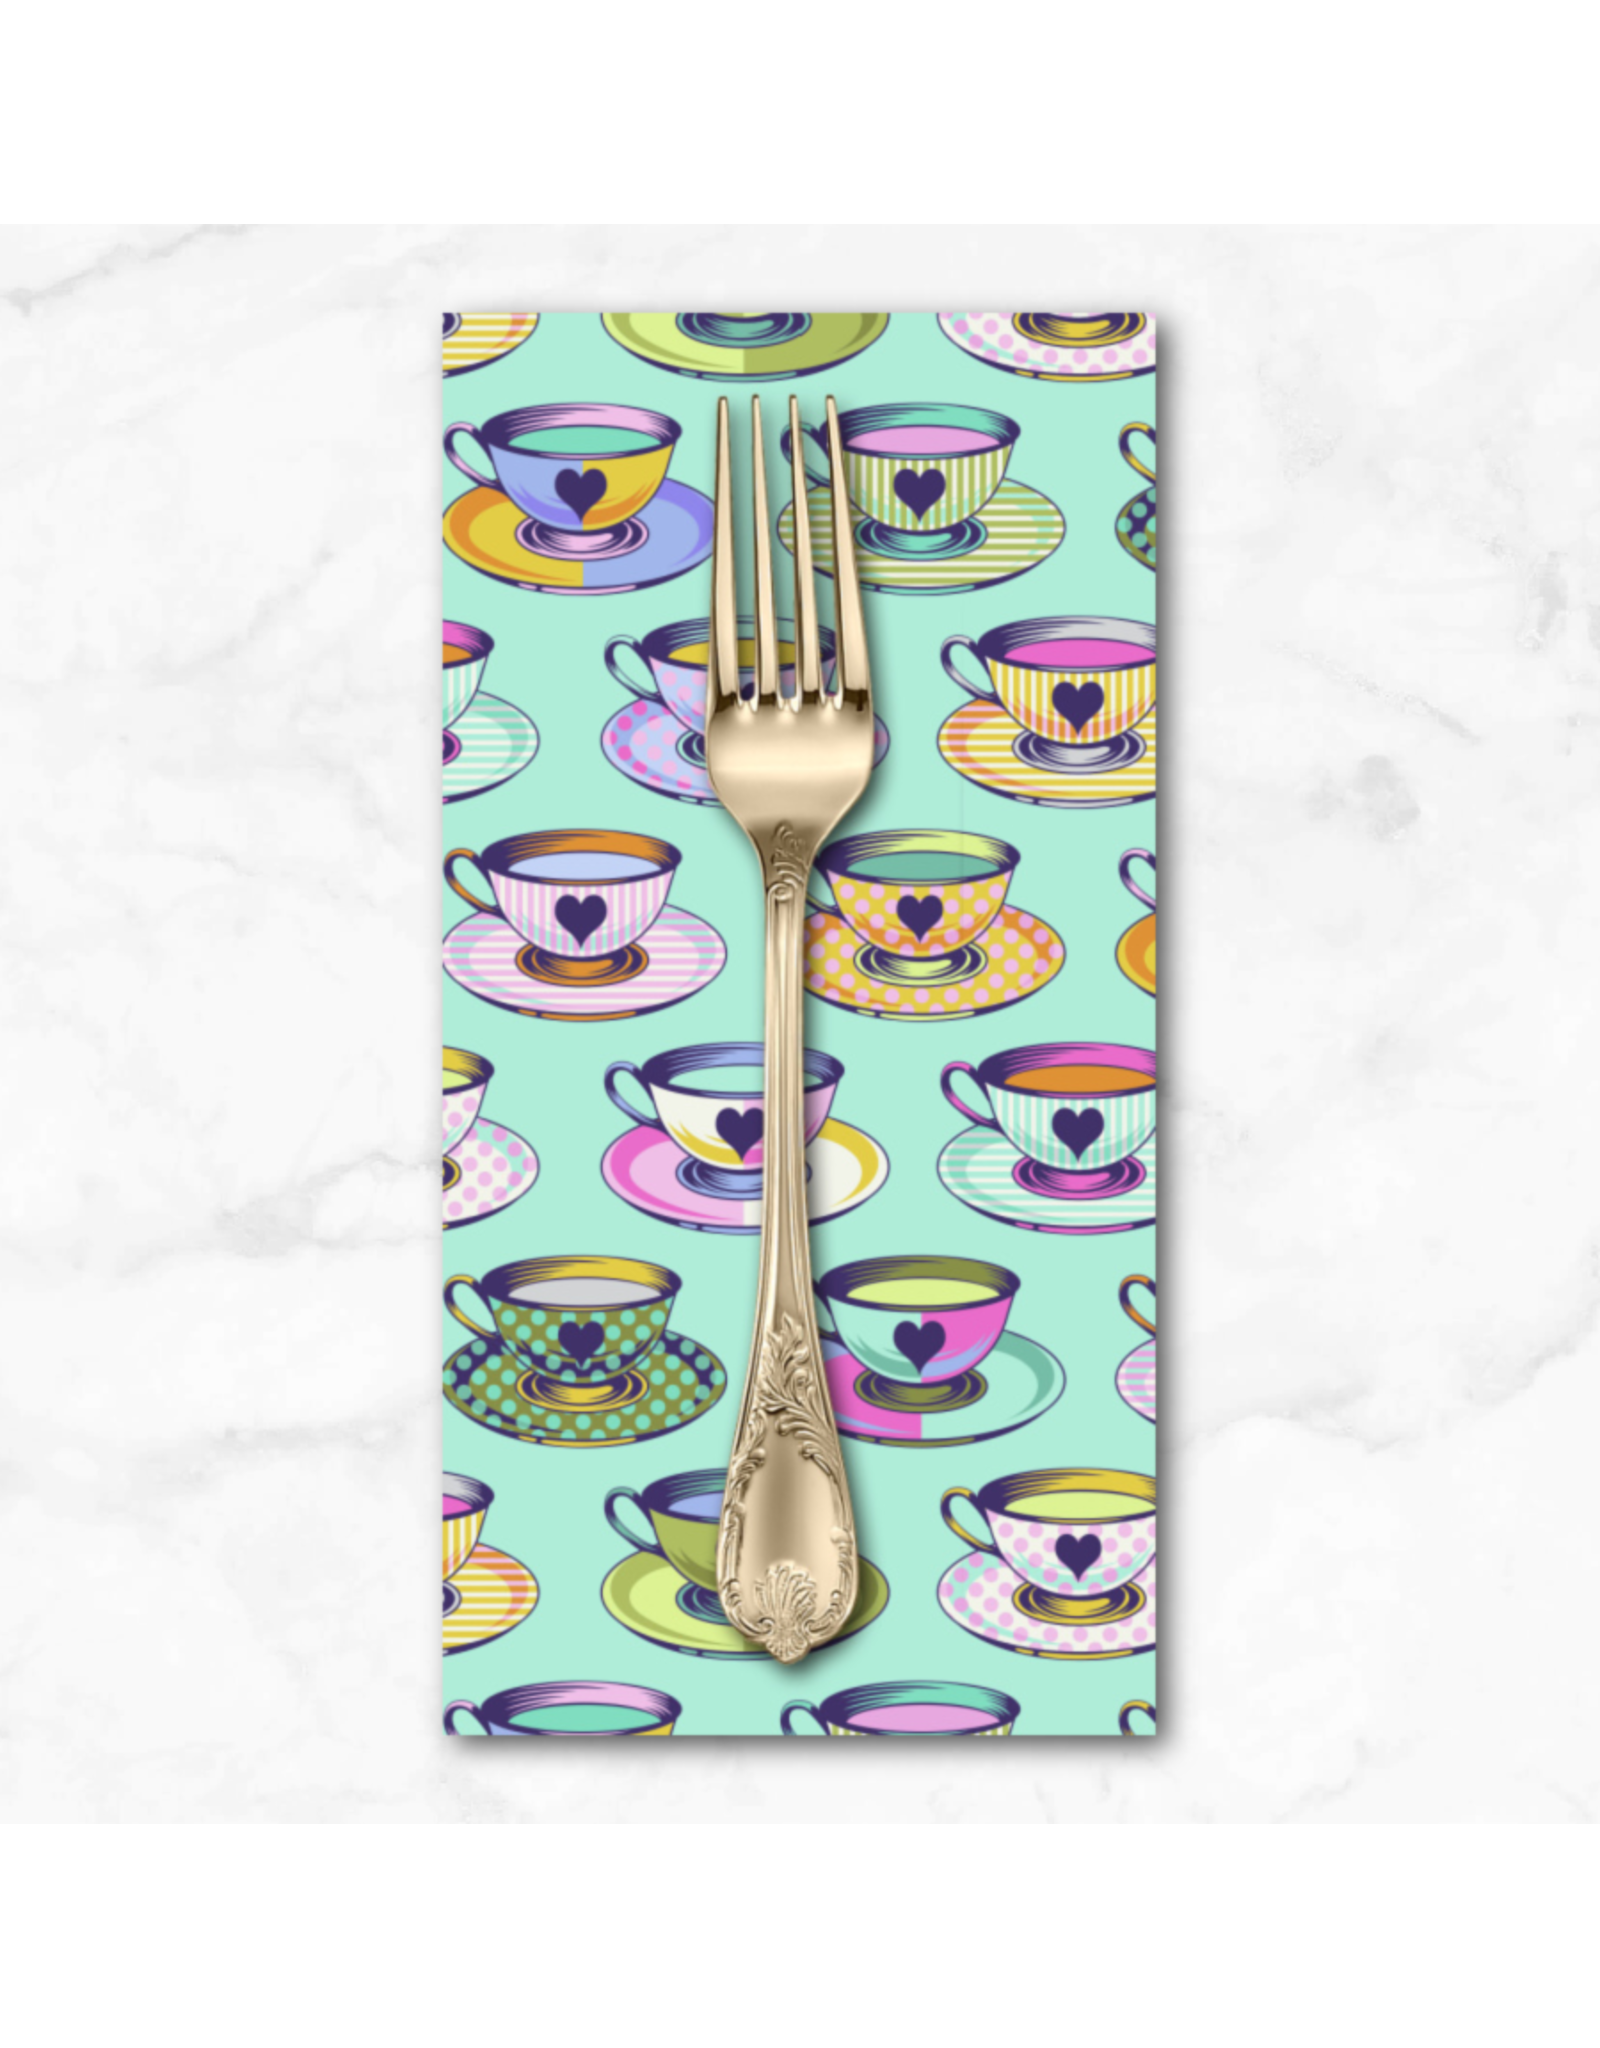 PD's Tula Pink Collection Curiouser and Curiouser, Tea Time in Daydream, Dinner Napkin